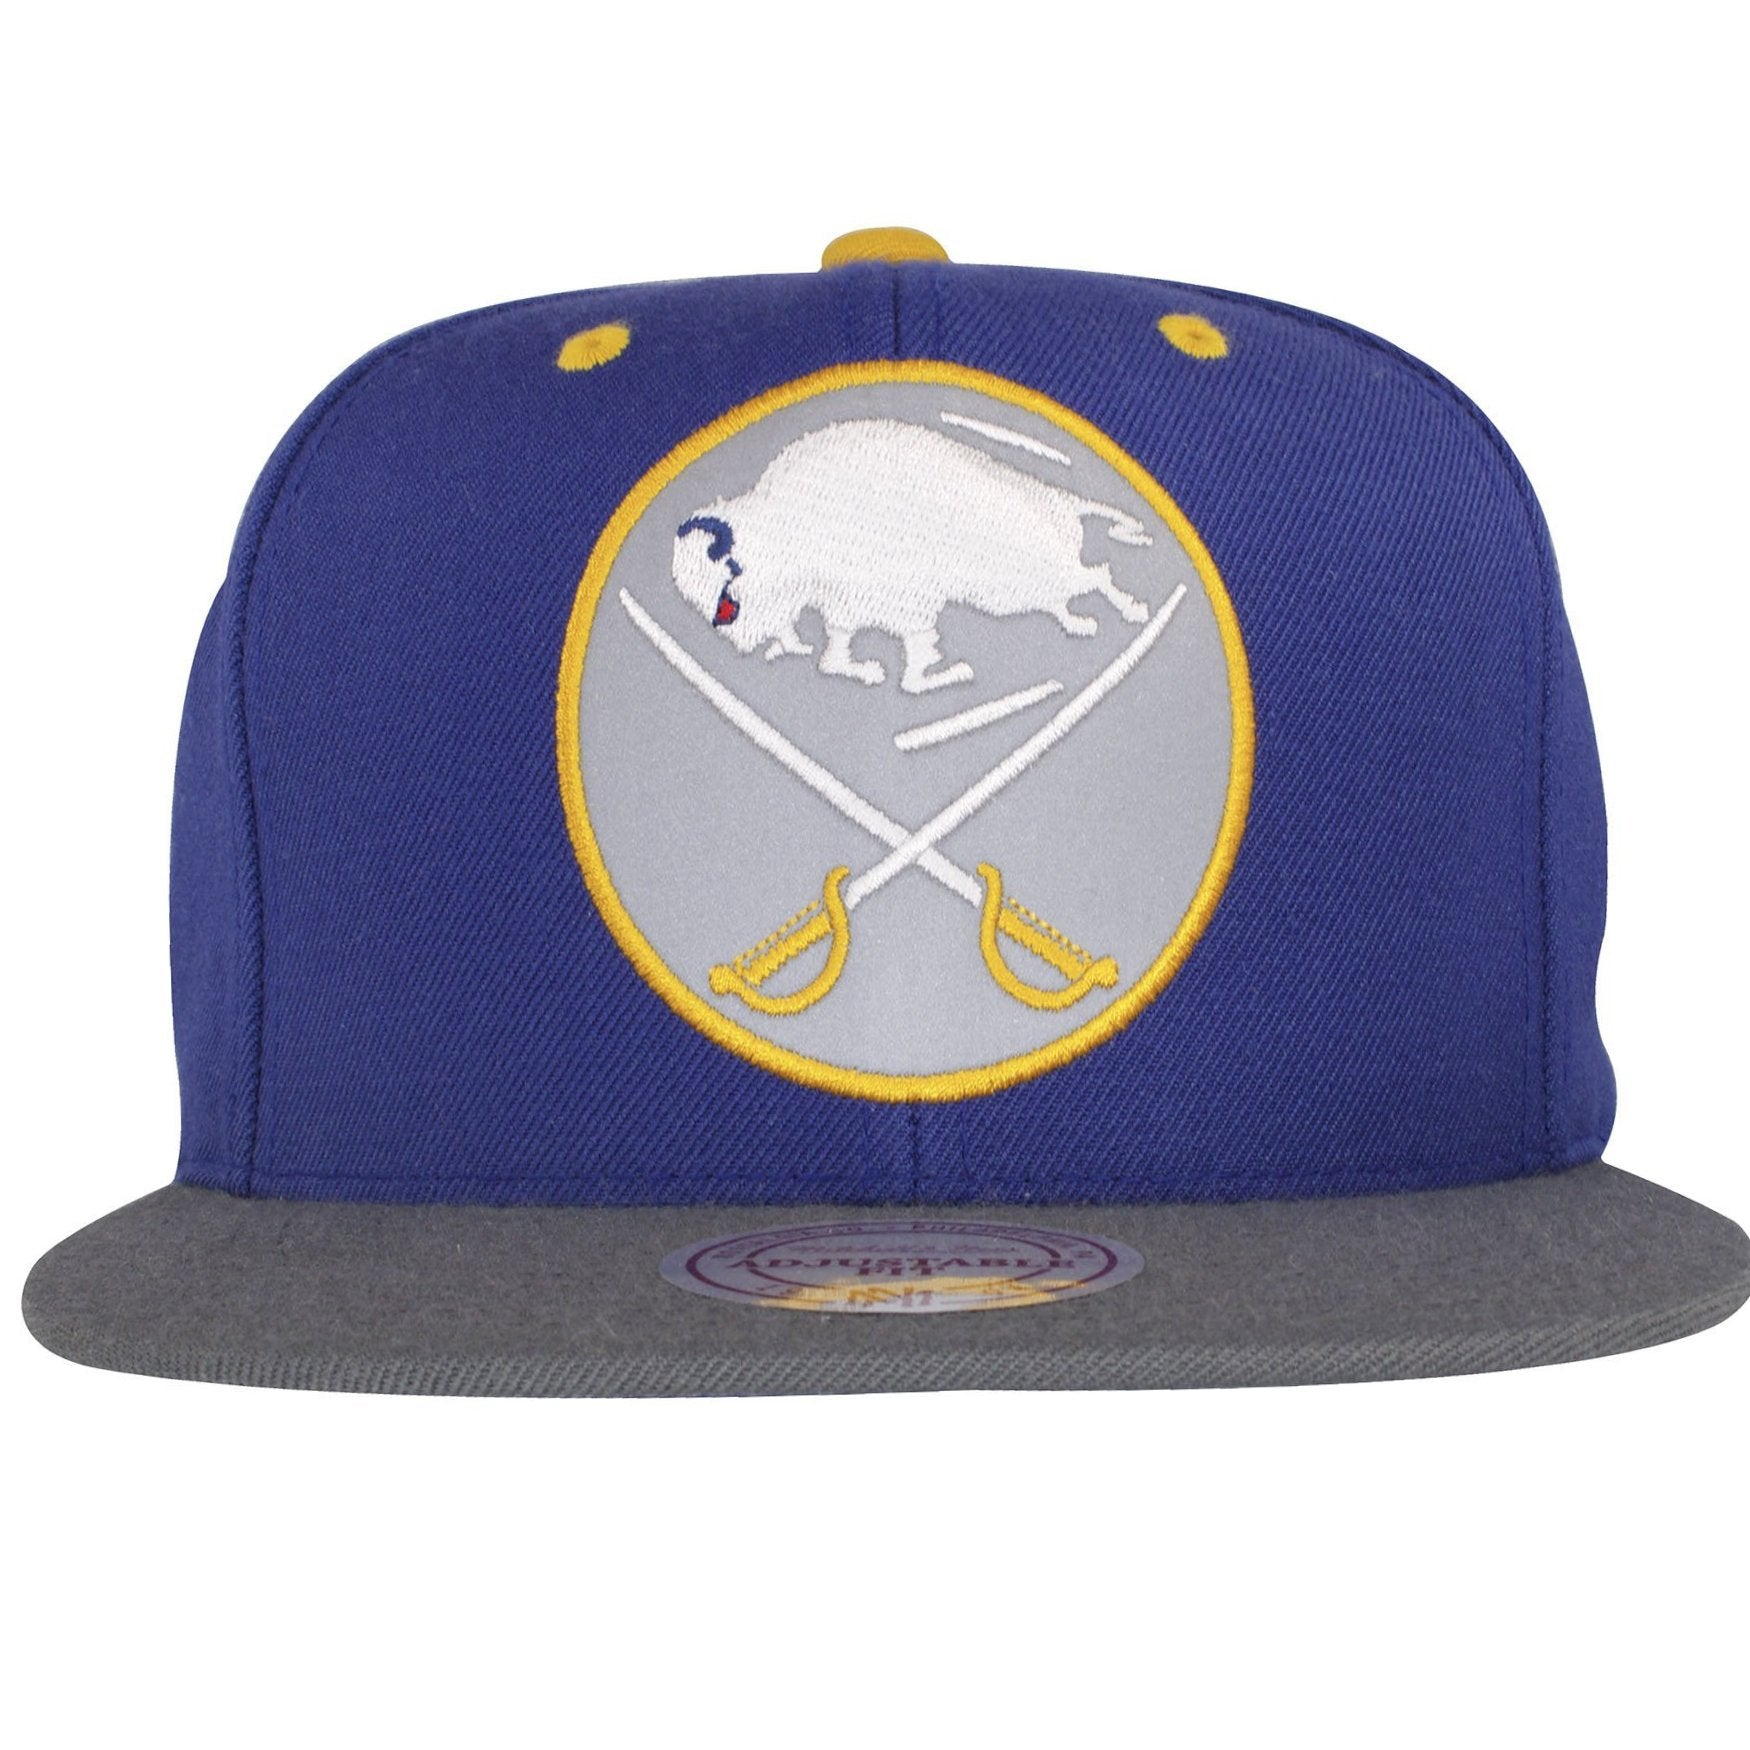 sports shoes 4e06f 9c3a4 on the front of the reflective buffalo sabres mitchell and ness snapback hat  is a reflective